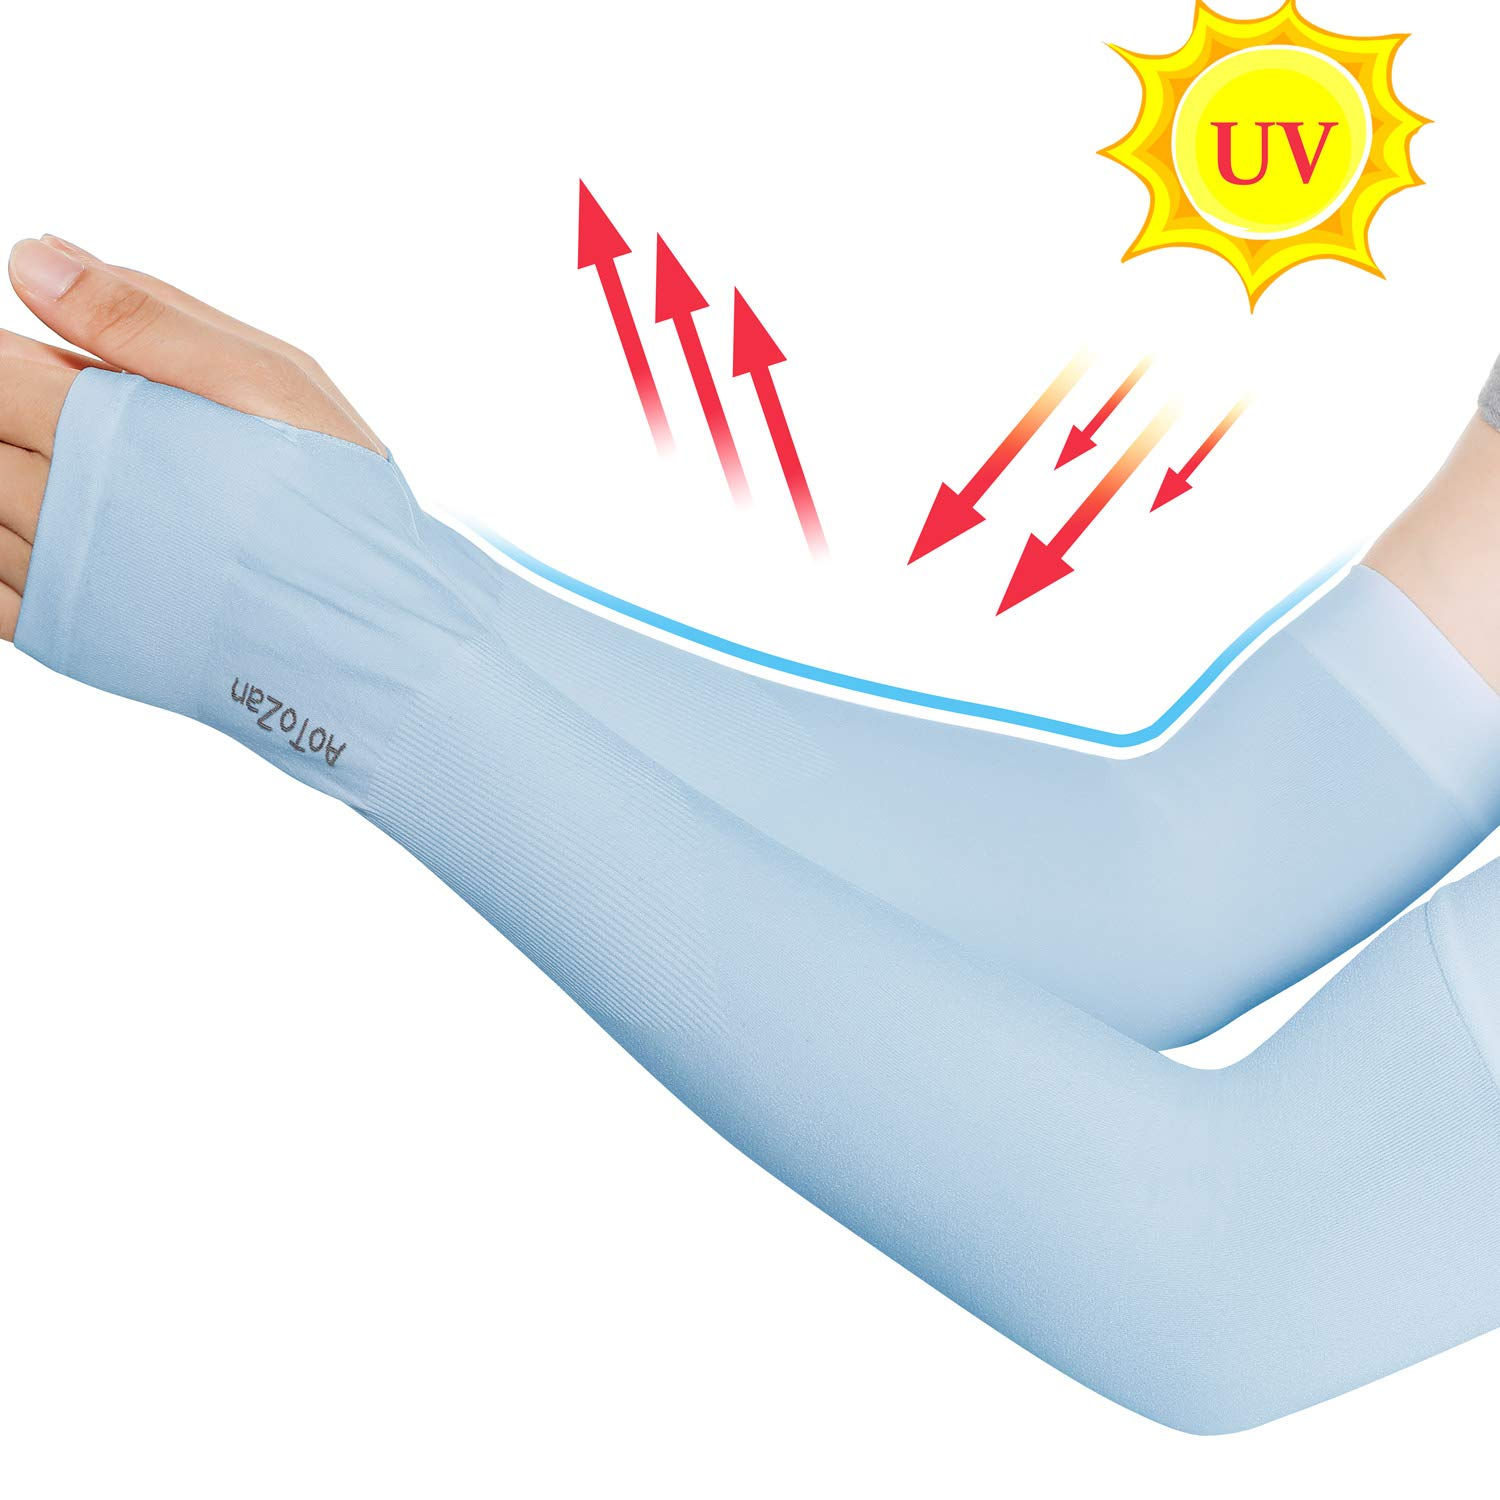 Compression Cooling Sun UV Protection Arm Sleeves Cover Warmers for Men Women